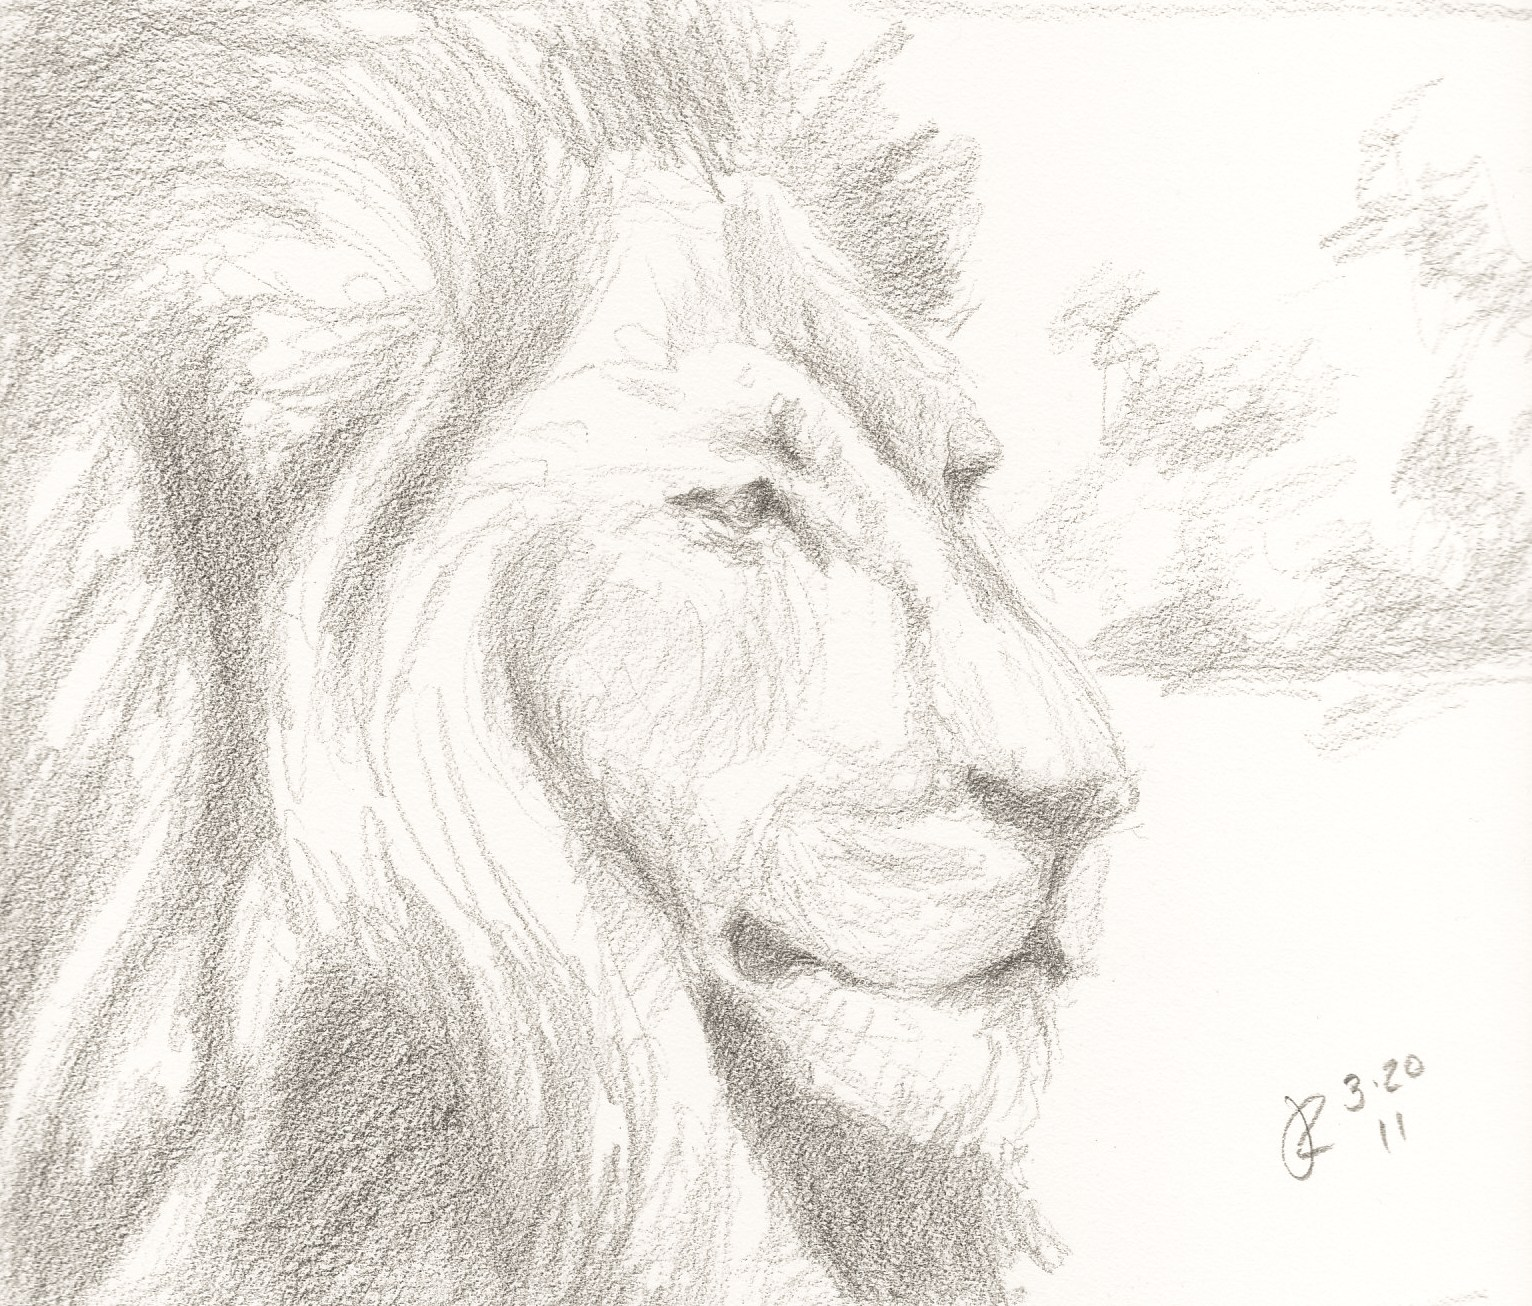 Lion which is mighty among beasts and does not turn away from anypencil drawing of a